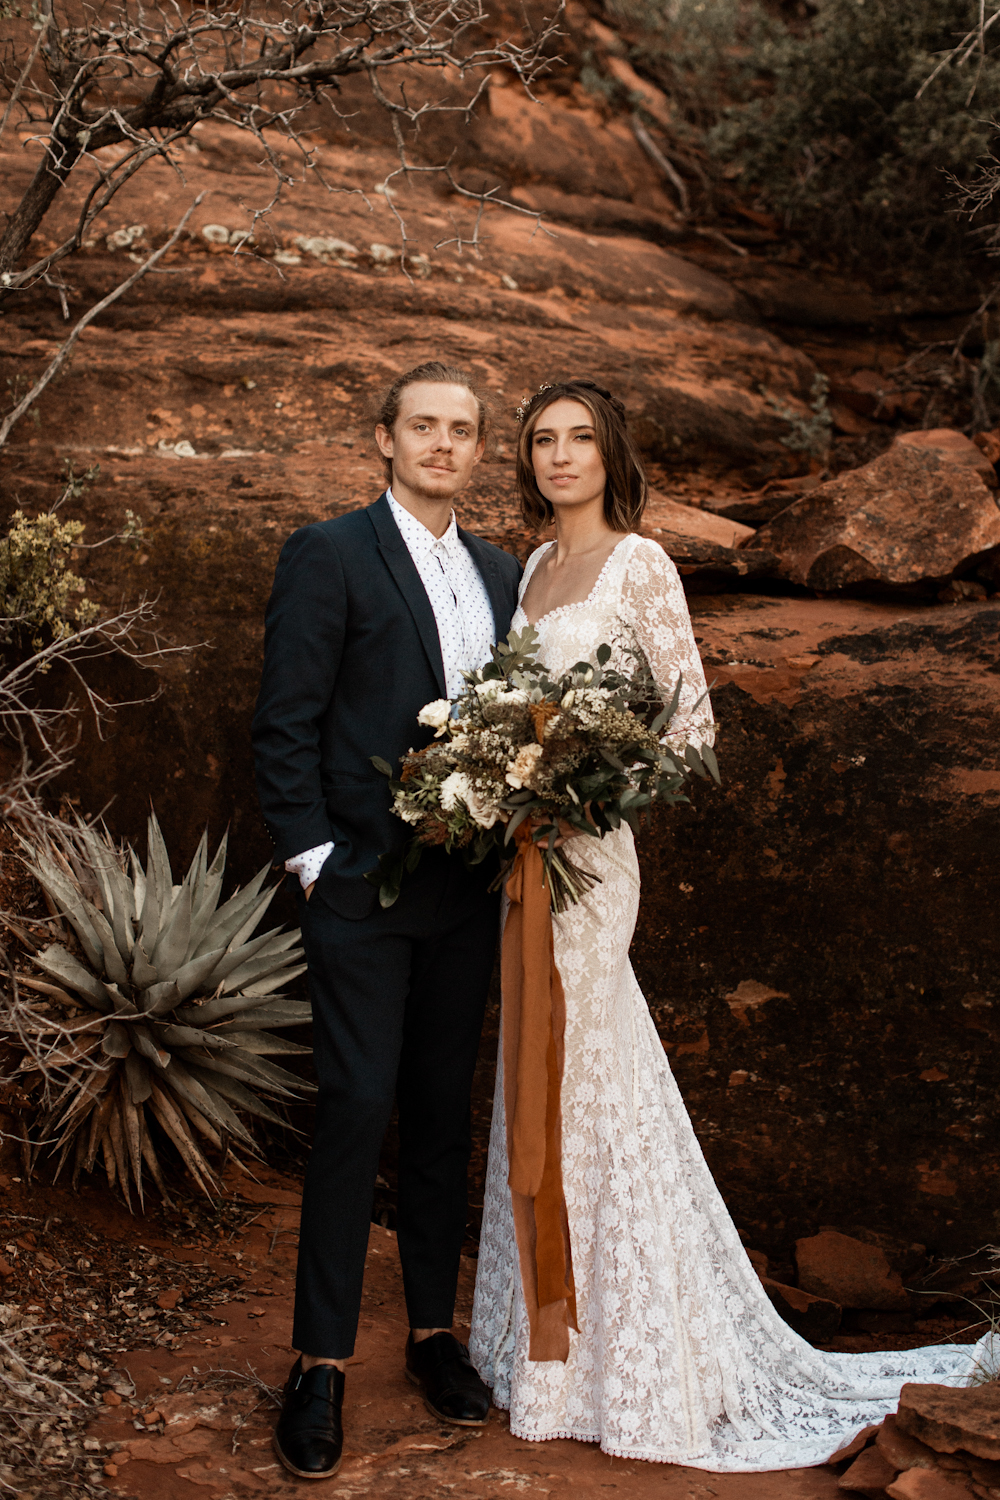 Couple poses for a wedding elopement portrait in Sedona, Arizona.